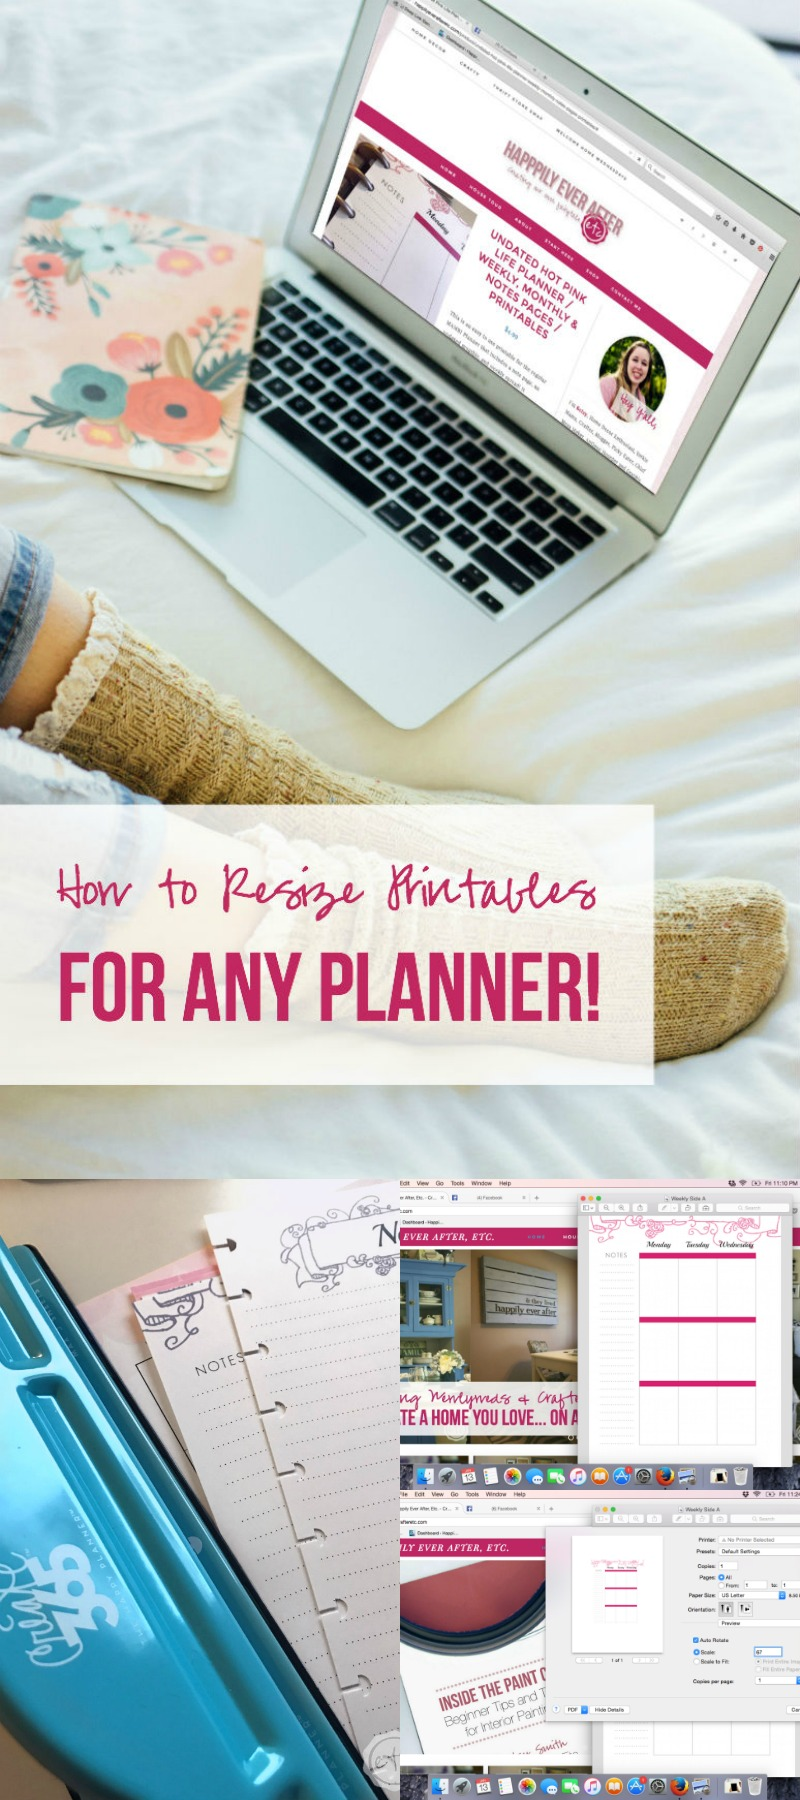 How to Resize Printables for Any Planner